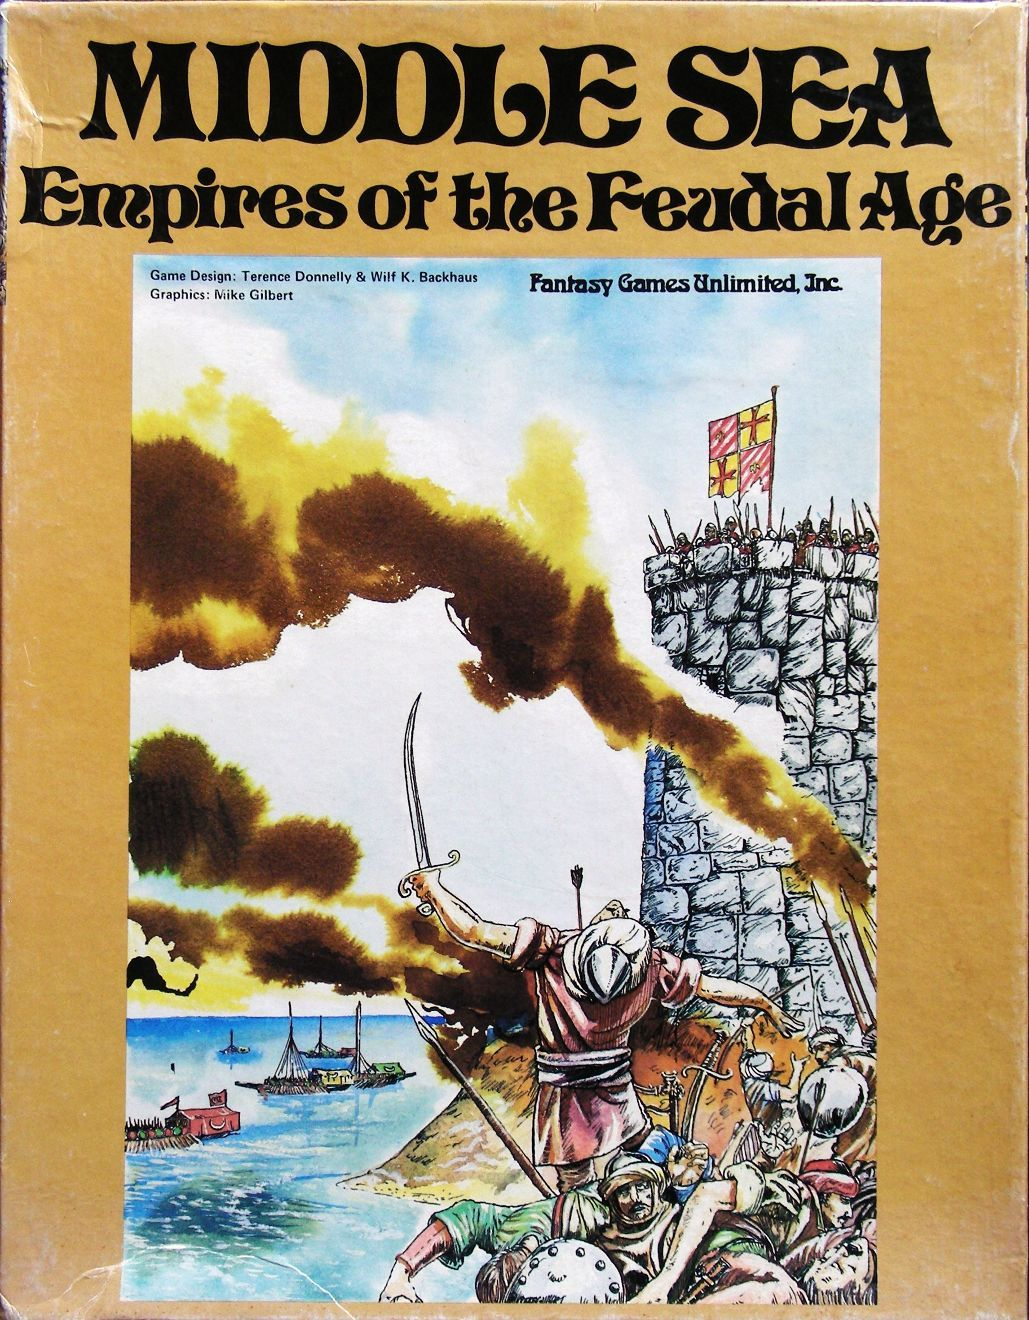 Middle Sea: Empires of the Feudal Age